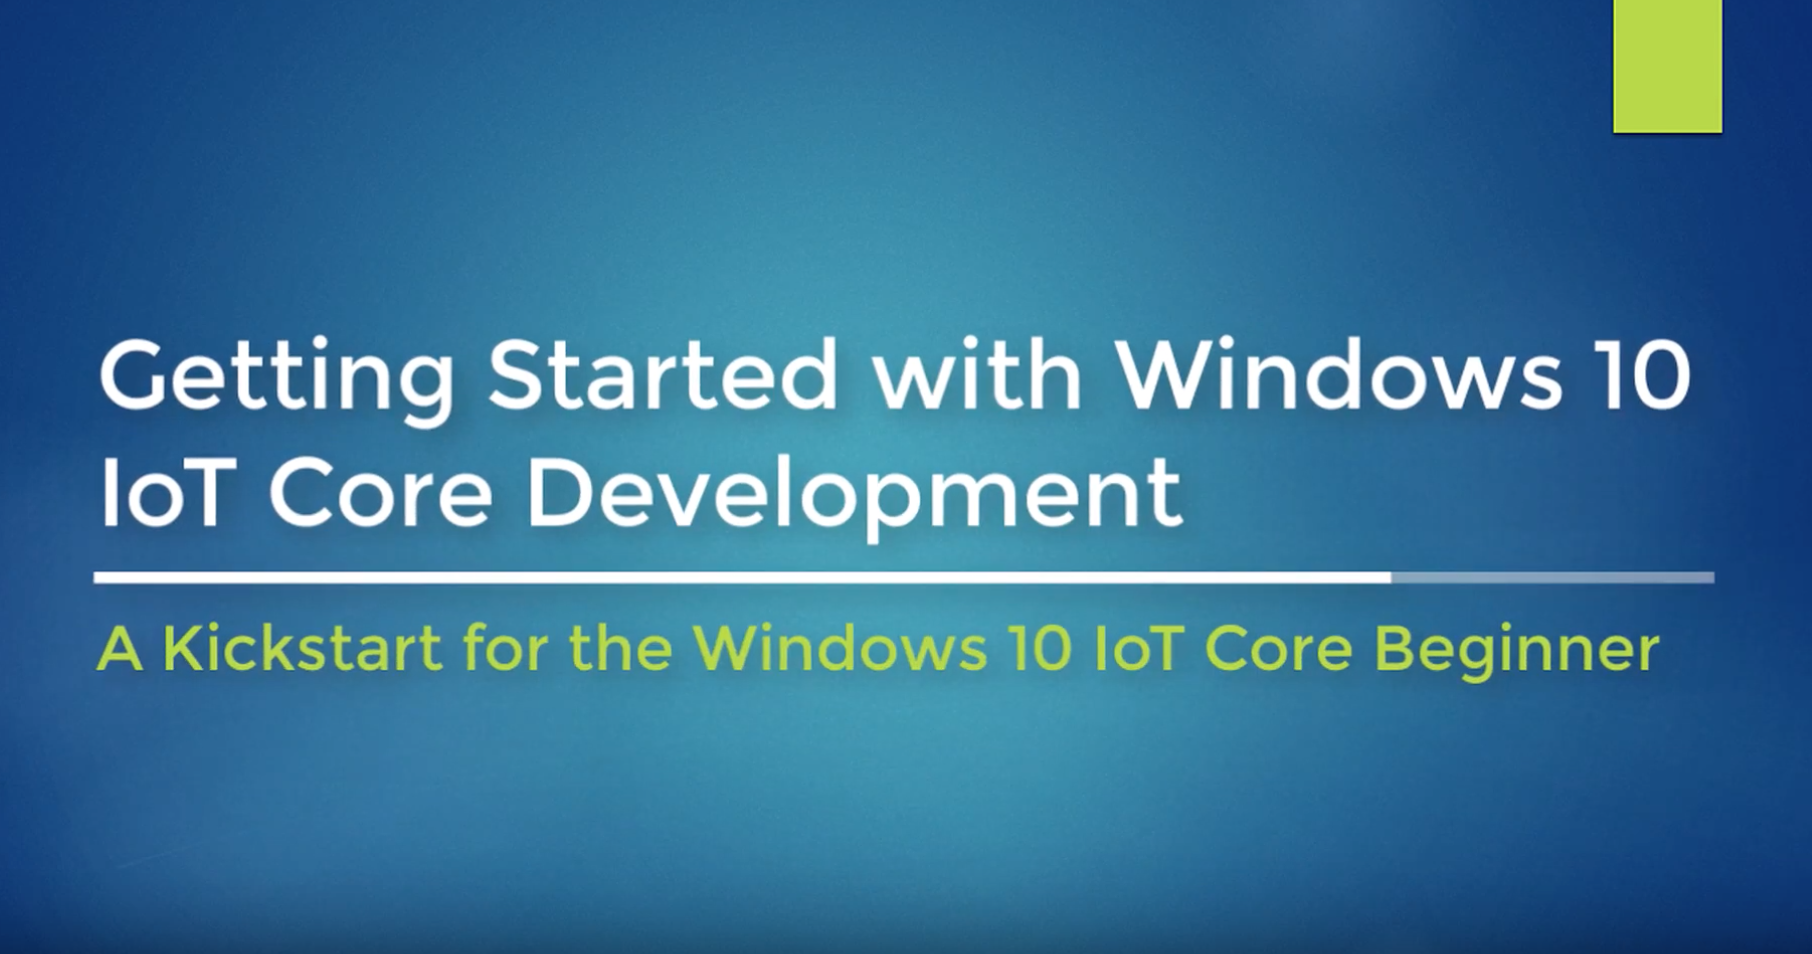 Getting Started with Windows 10 IoT Core Development